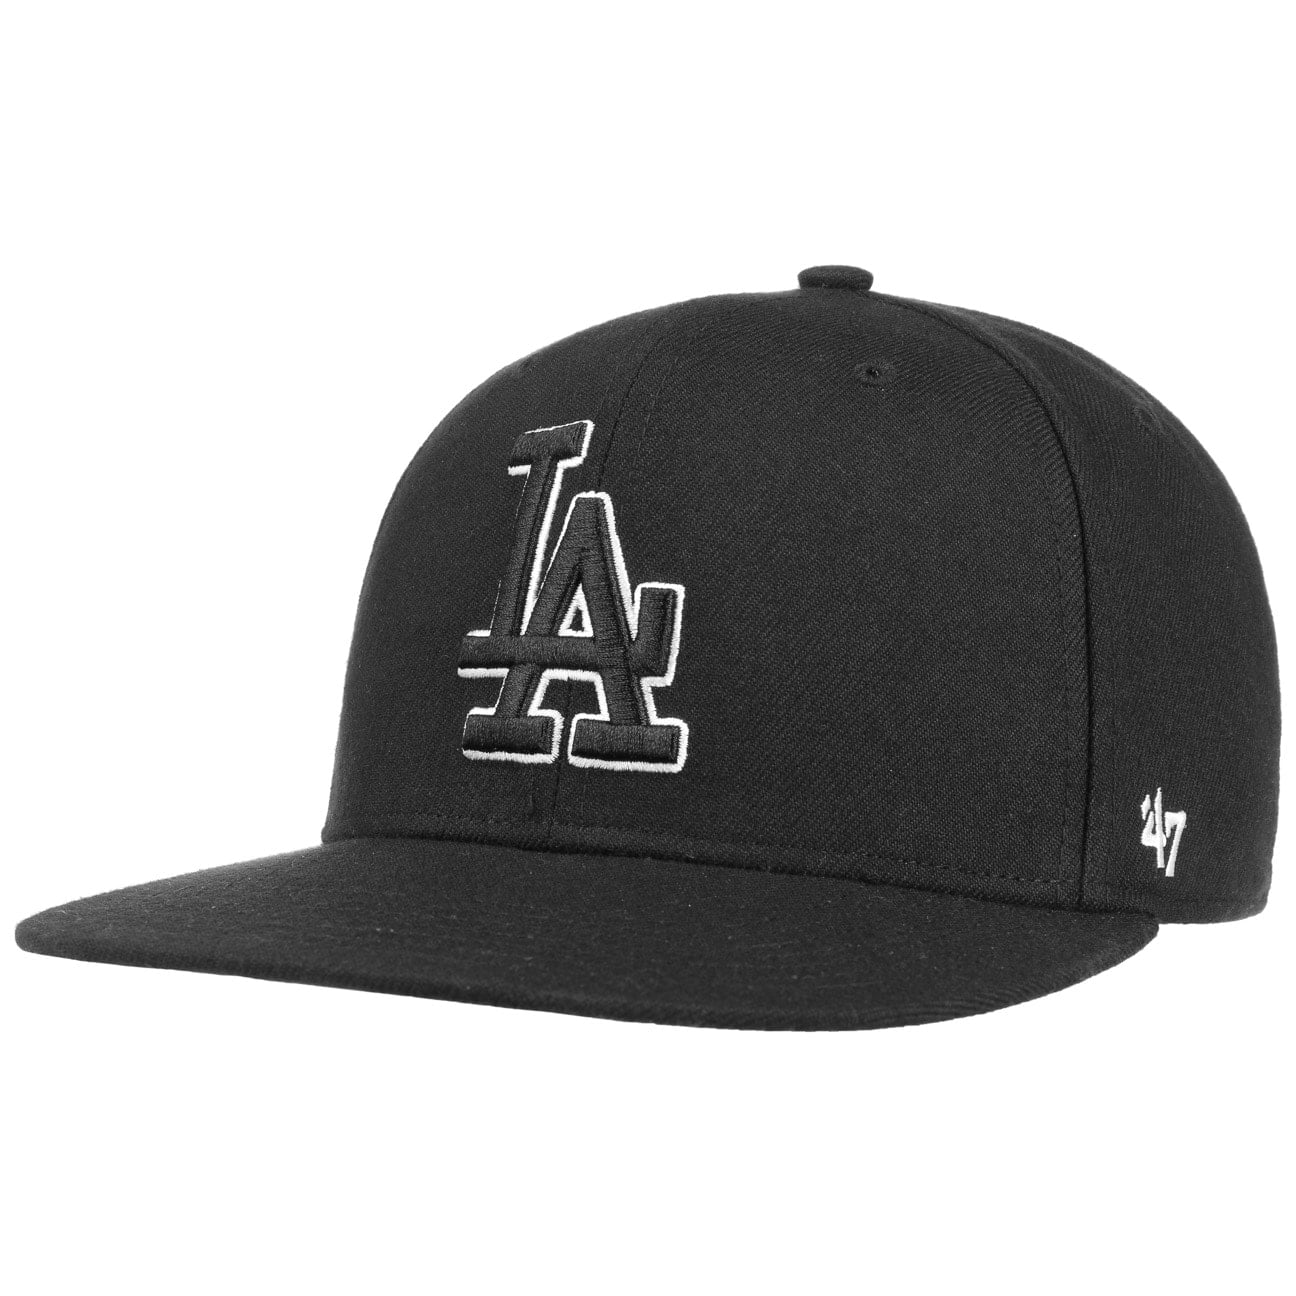 Gorra Captain Sureshot Dodgers by 47 Brand  gorra de baseball